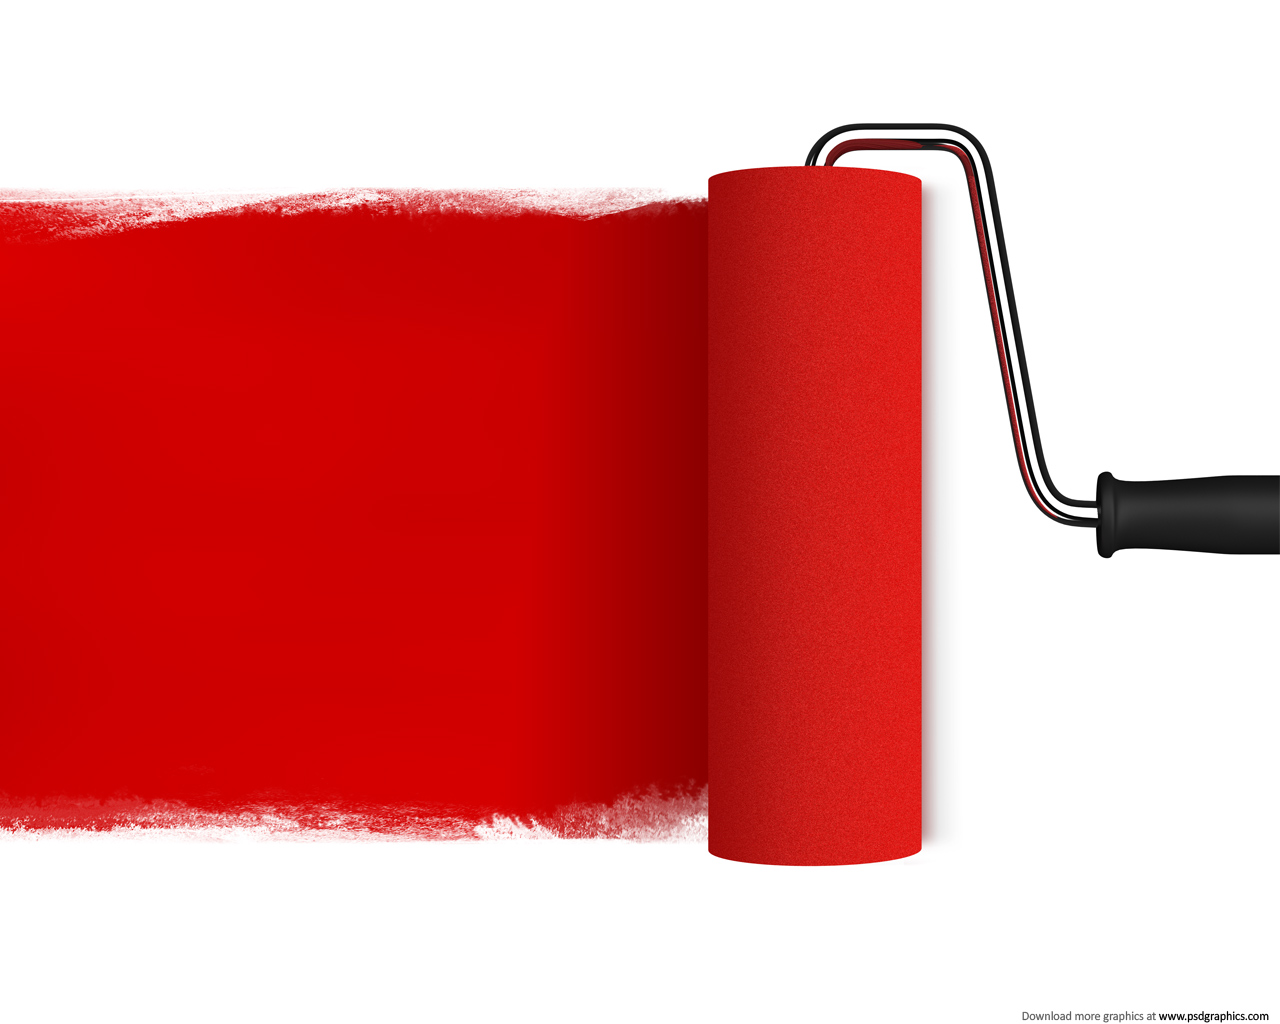 Medium size preview (1280x1024px): Red paint roller